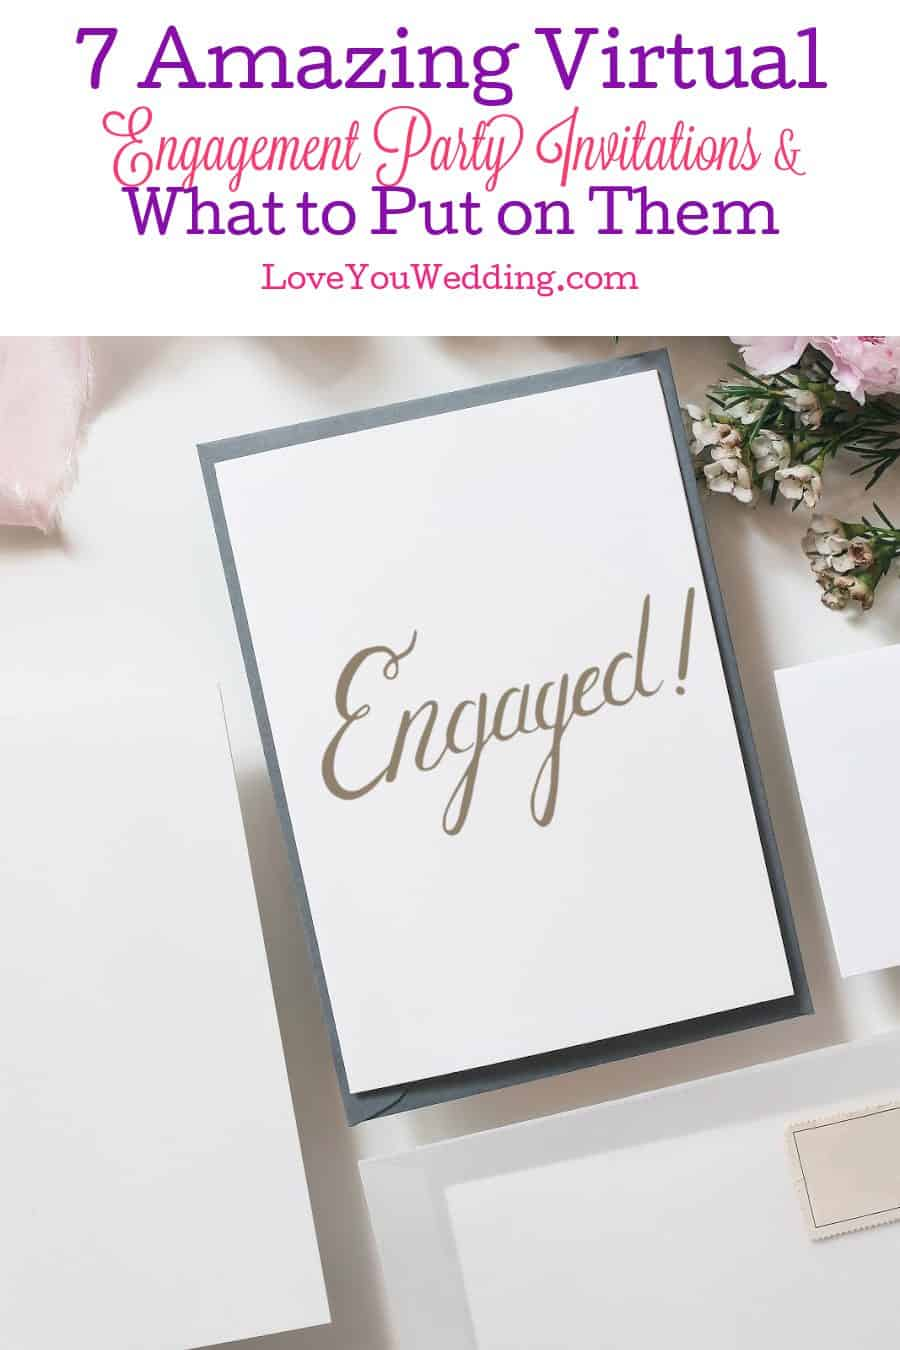 Looking for some cute virtual engagement party invitations? Wondering what to even put on them? Check out our guide & recommendations!